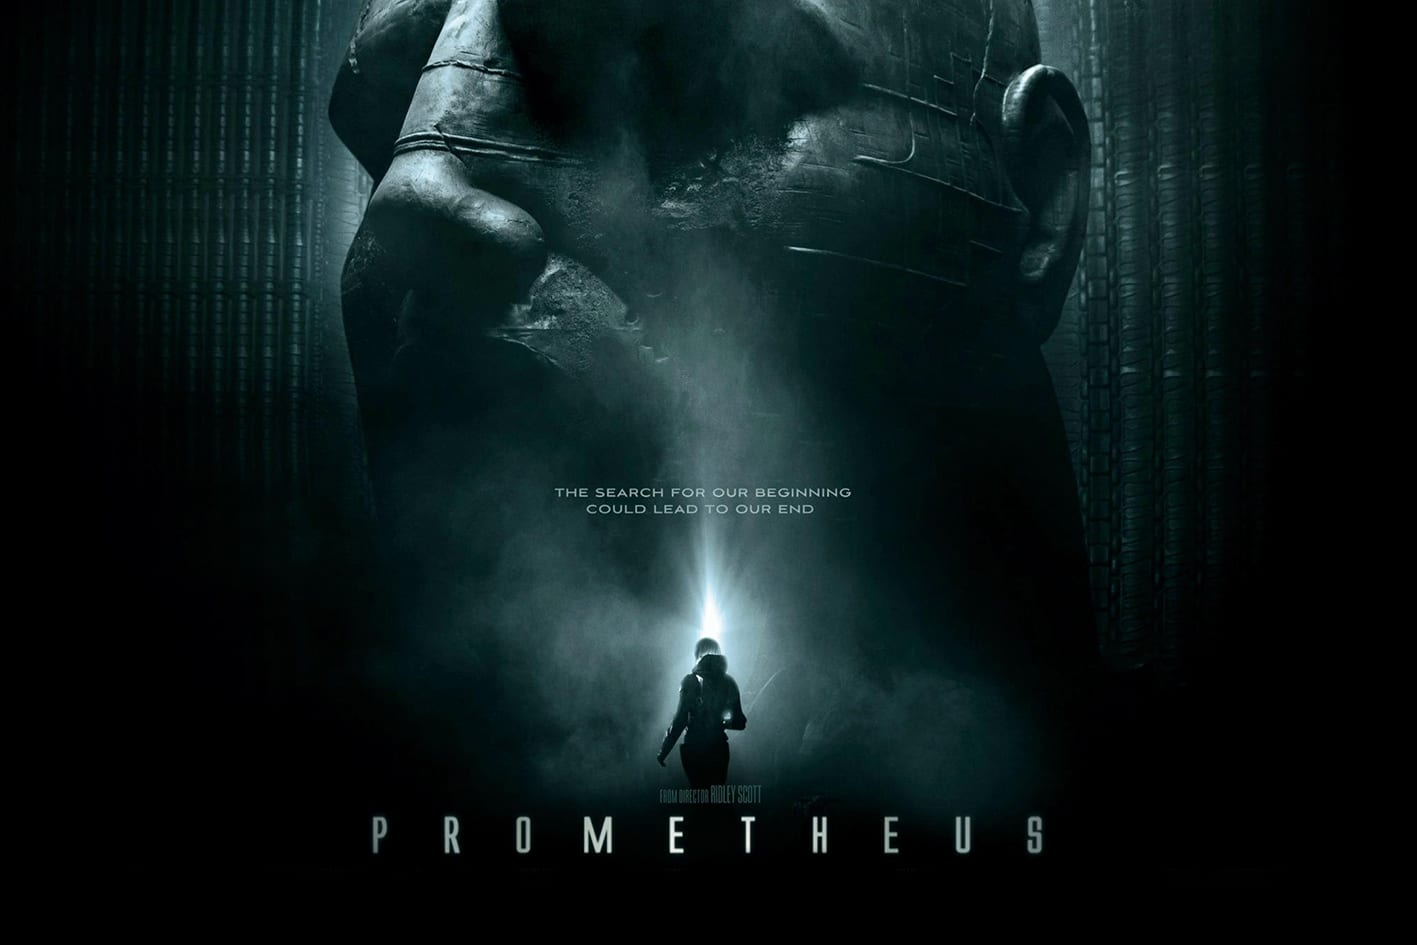 Ridley Scott's Prometheus